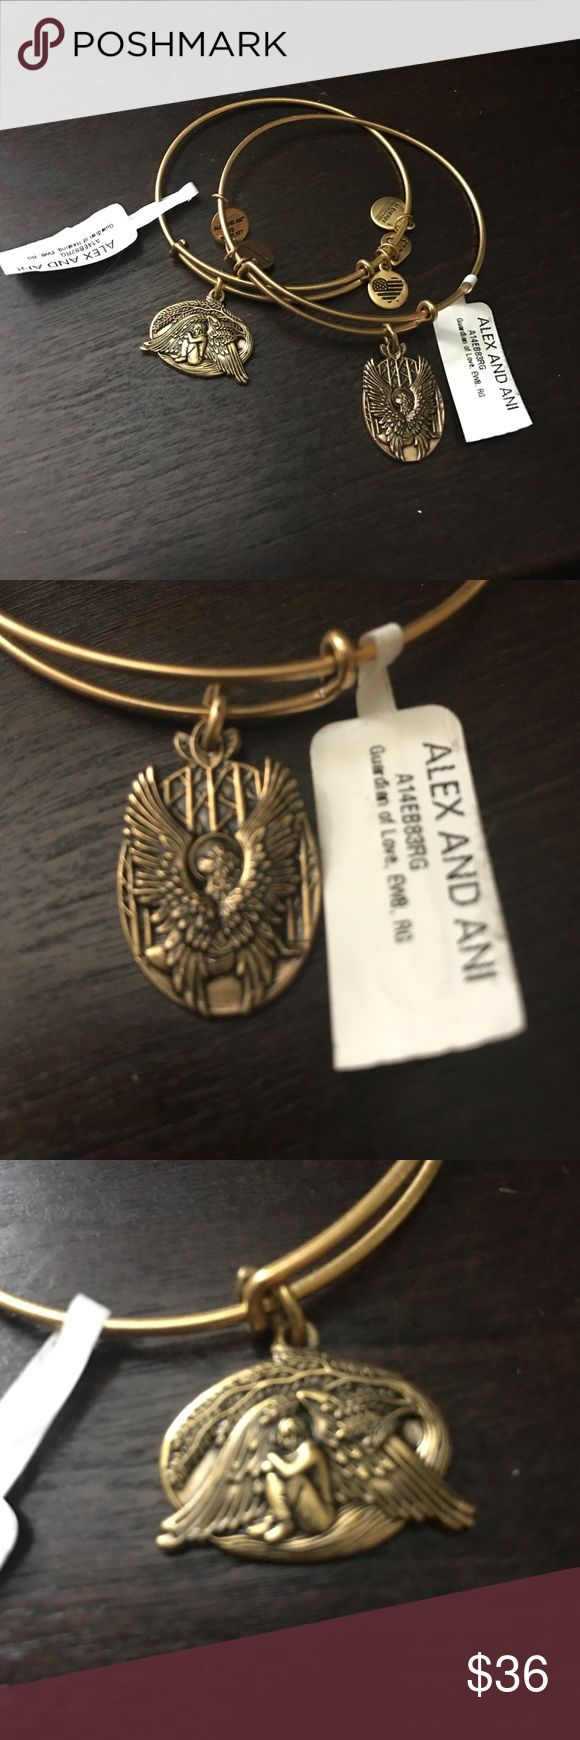 Alex and Ani gold bracelets Set of 2 Alex and Ani bracelets includes Guardian of healing, renew me and Guardian of love, surround me. Both are new with retail tags Alex & Ani Jewelry Bracelets